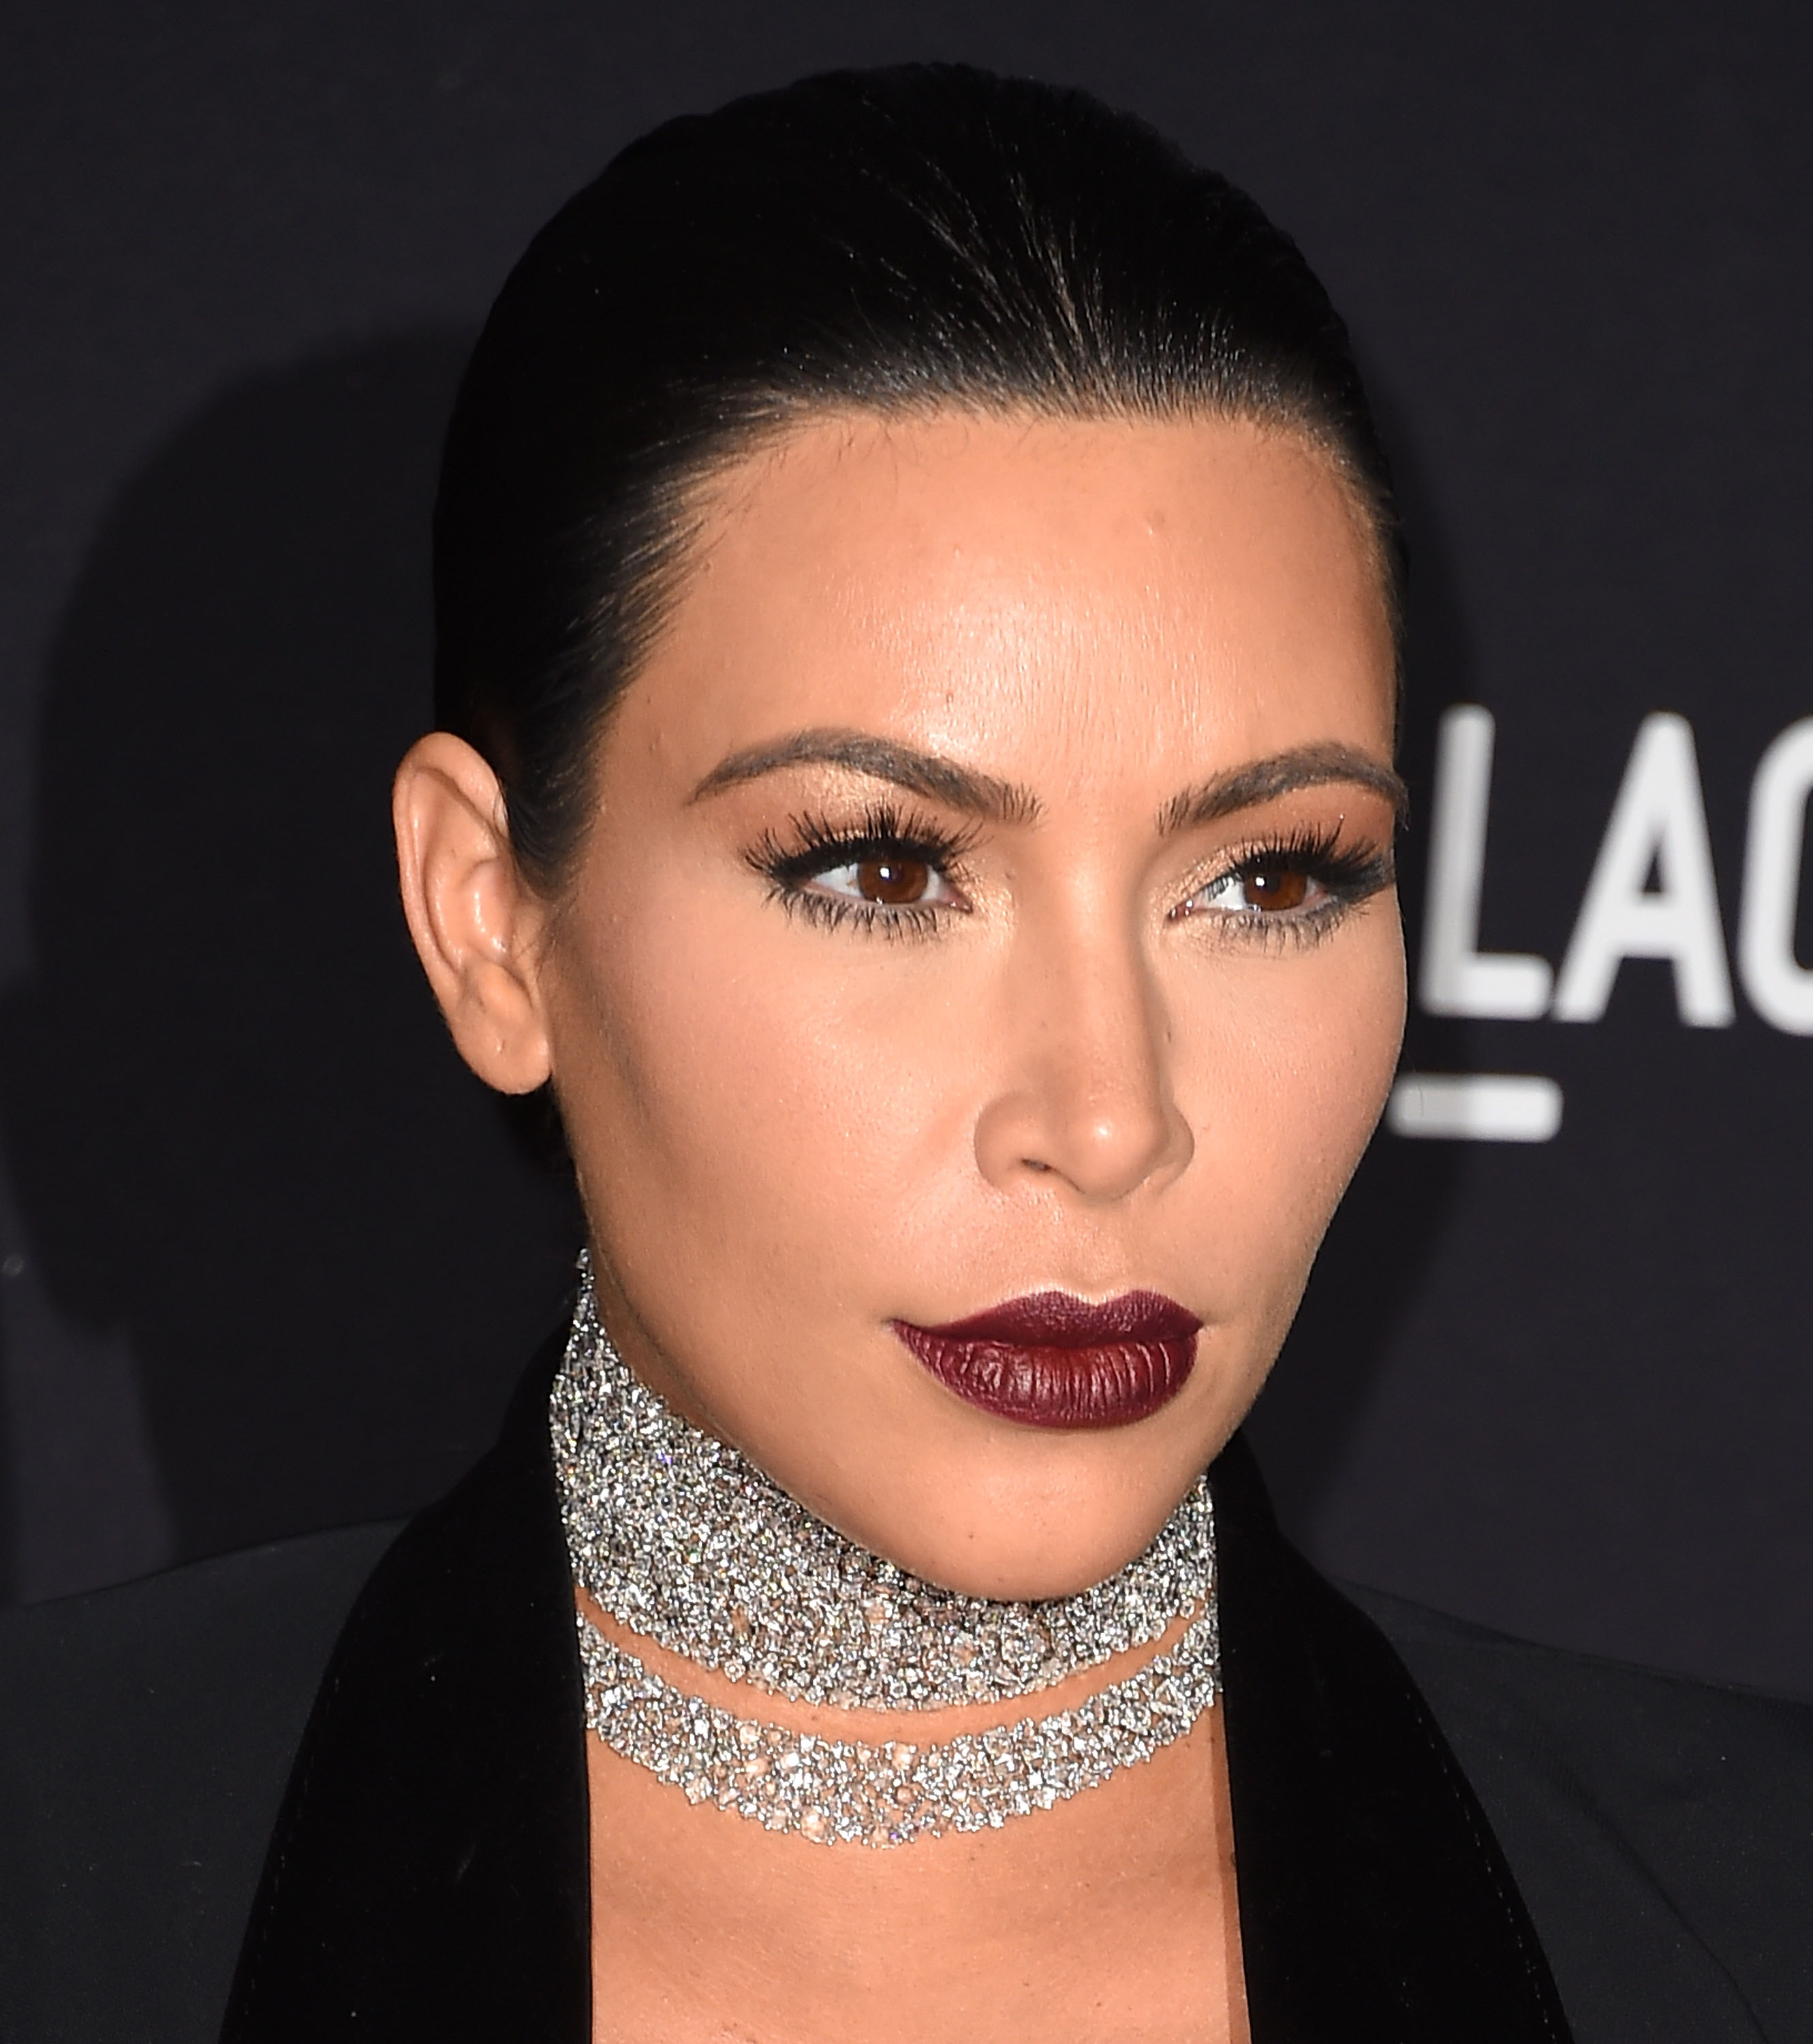 "<p>You might be inclined to reach for classic red lippie this party season, but stop for a season refresh. The sexy statement lip this time around is much, much darker than the last time you pulled a cracker. Just check out Kim Kardashian's gothic glam lip here.</p> <p>From runways to red carpets it's all about the rouge-noir lip, from deep plum to matte magenta. At Atelier Versace in Milan, models wowed with glittered ombre lips in rich berry while the lip stains at Antonio Marras were pressed on and plum-coloured. </p> <p>So how do you skip looking like a '90s goth gone wrong?  First up, keep the rest of your makeup  minimal - that means no blush or bright eyeshadows. Secondly, ditch pale, velvety foundation for a modern finish of second-skin honey-hued dewy. </p> <p>""When wearing a dark lip, whether matte or glossy, don't have a lot of other products on the face,"" says <a href=""https://www.instagram.com/carol_mackie/"" target=""_blank"">Carol Mackie</a>, Senior Artist, M.A.C Cosmetics. ""And don't perfect your lip straight away. Just get the product on then shape and tidy with lip liner."" For a modern finish, Mackie recommends starting with  M.A.C Lip Mix, which hug the lips, then slicking with gloss. </p> <p> Swipe through our gallery to get some Bordeaux lip inspo plus our plum product picks of the season.</p>"